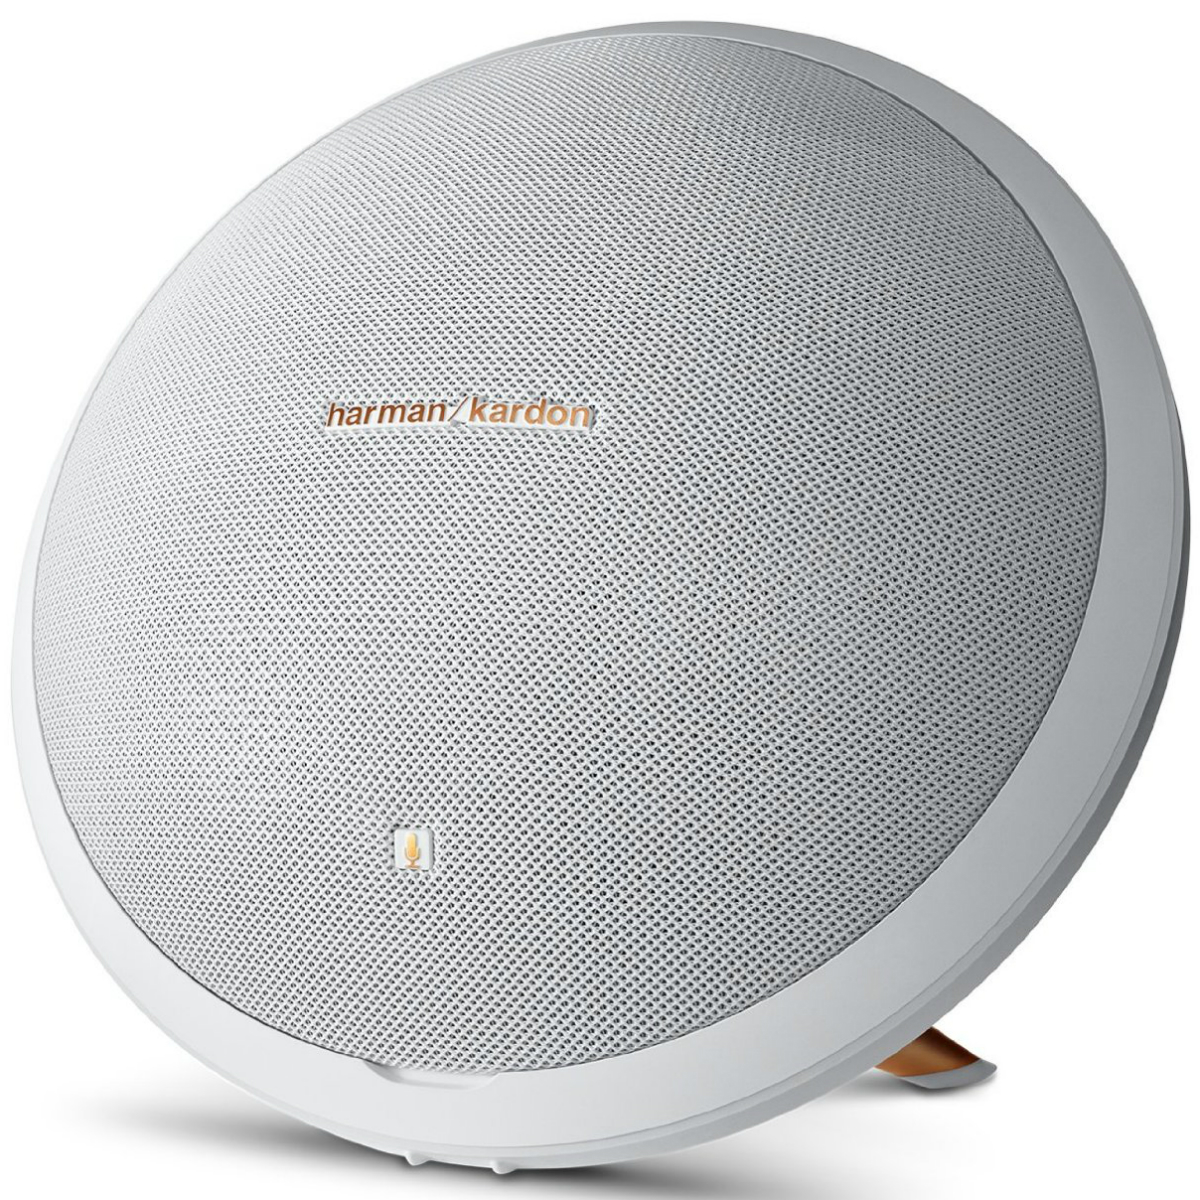 Factory Refurbished Harman Kardon Onyx Studio 2 Speaker -White by Harman Kardon